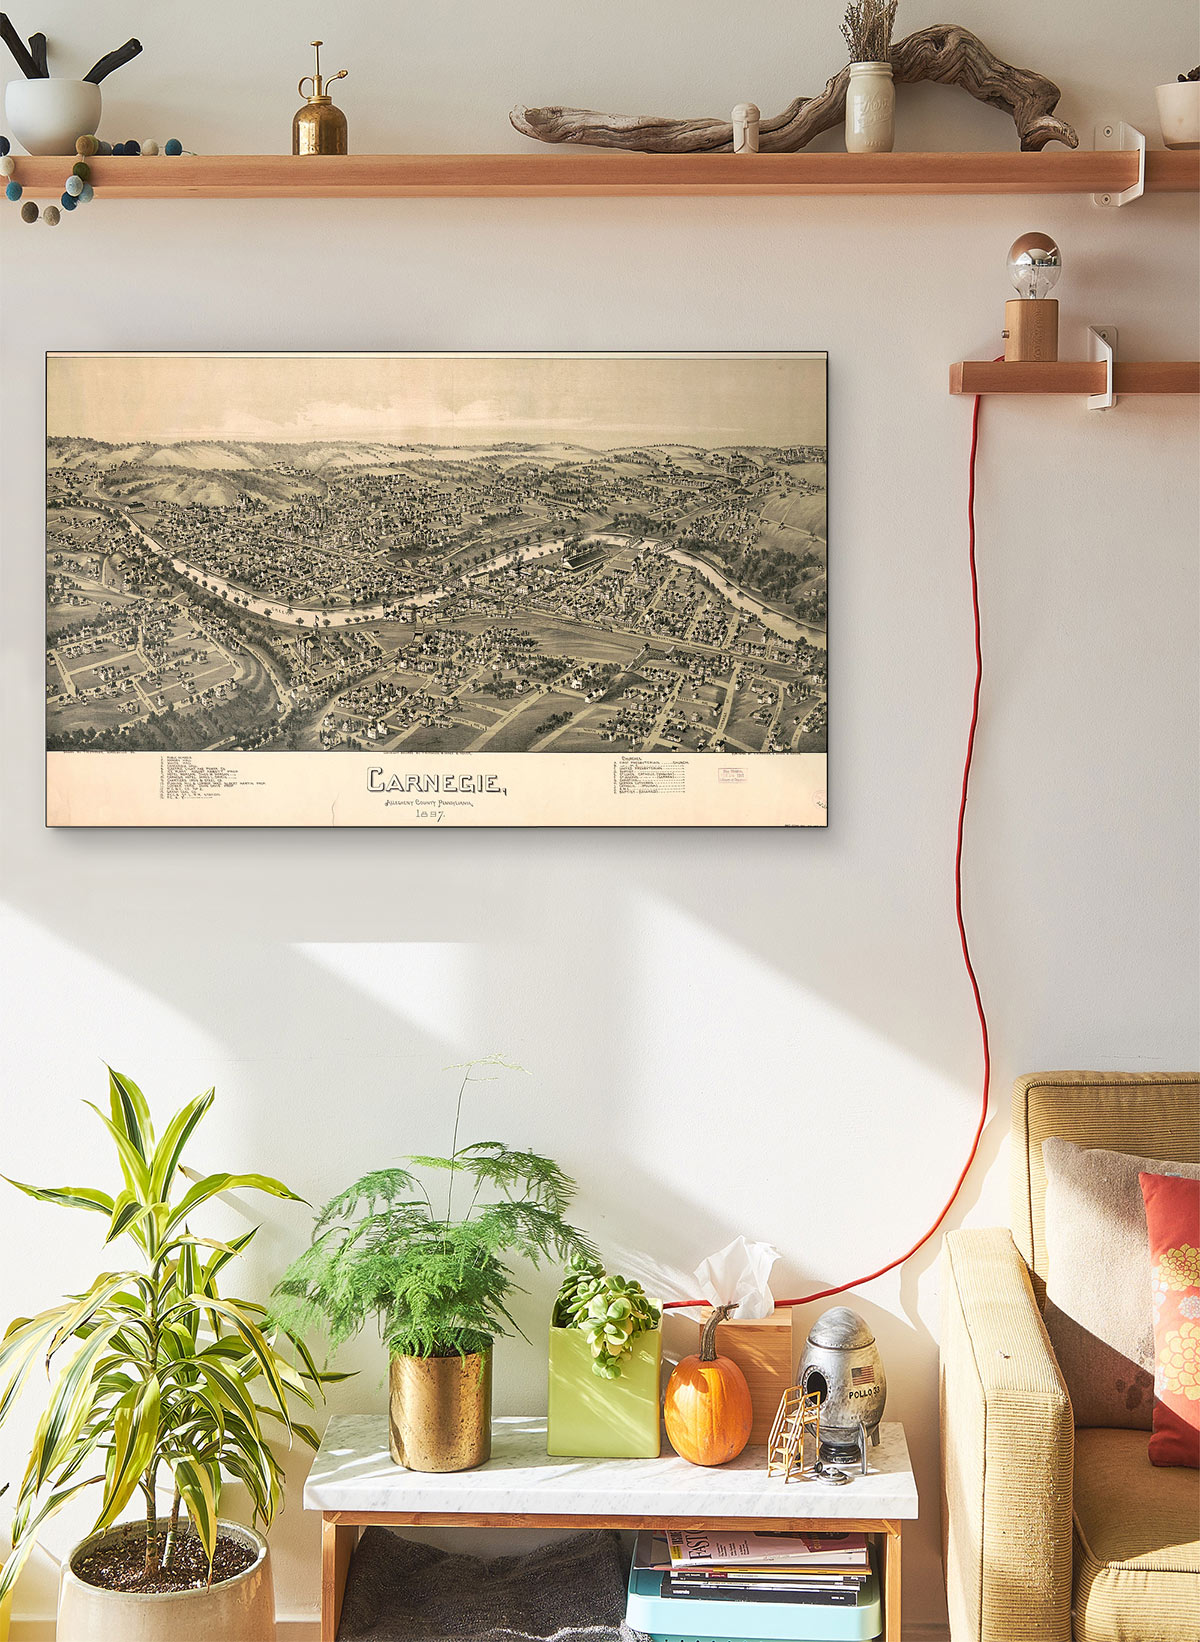 Carnegie Allegheny County Pennsylvania 1897. LARGE Vintage Map